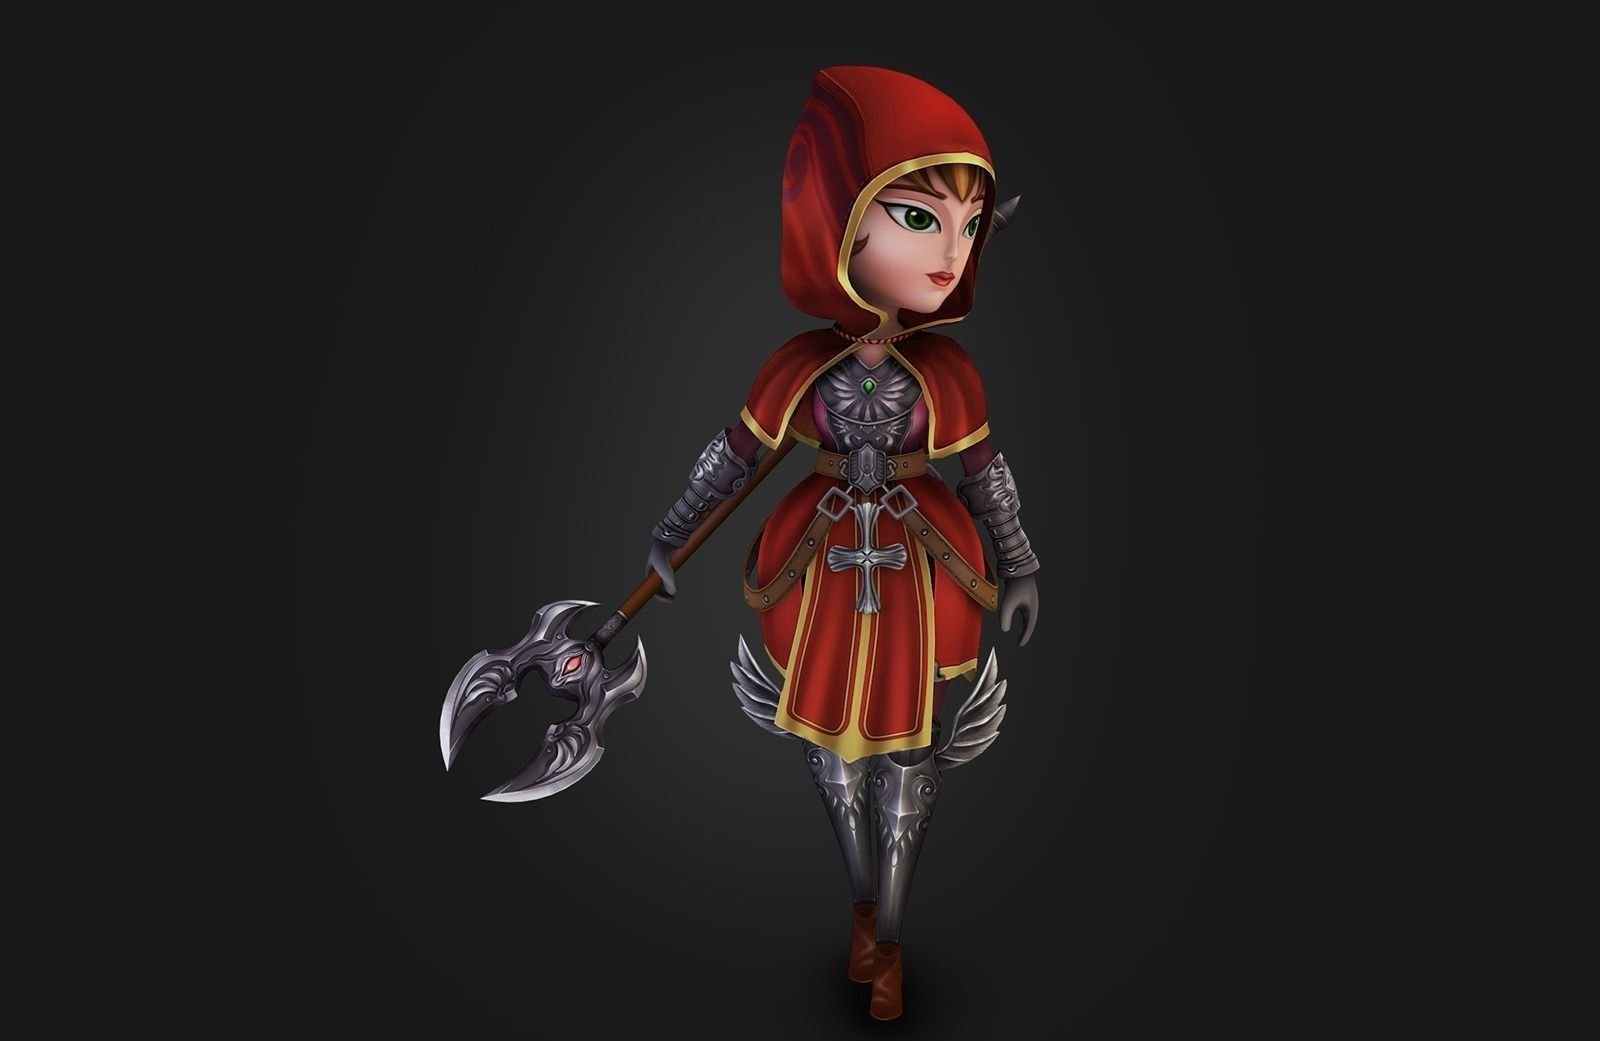 Medieval Chibi Warrior Free Vr Ar Low Poly 3d Model